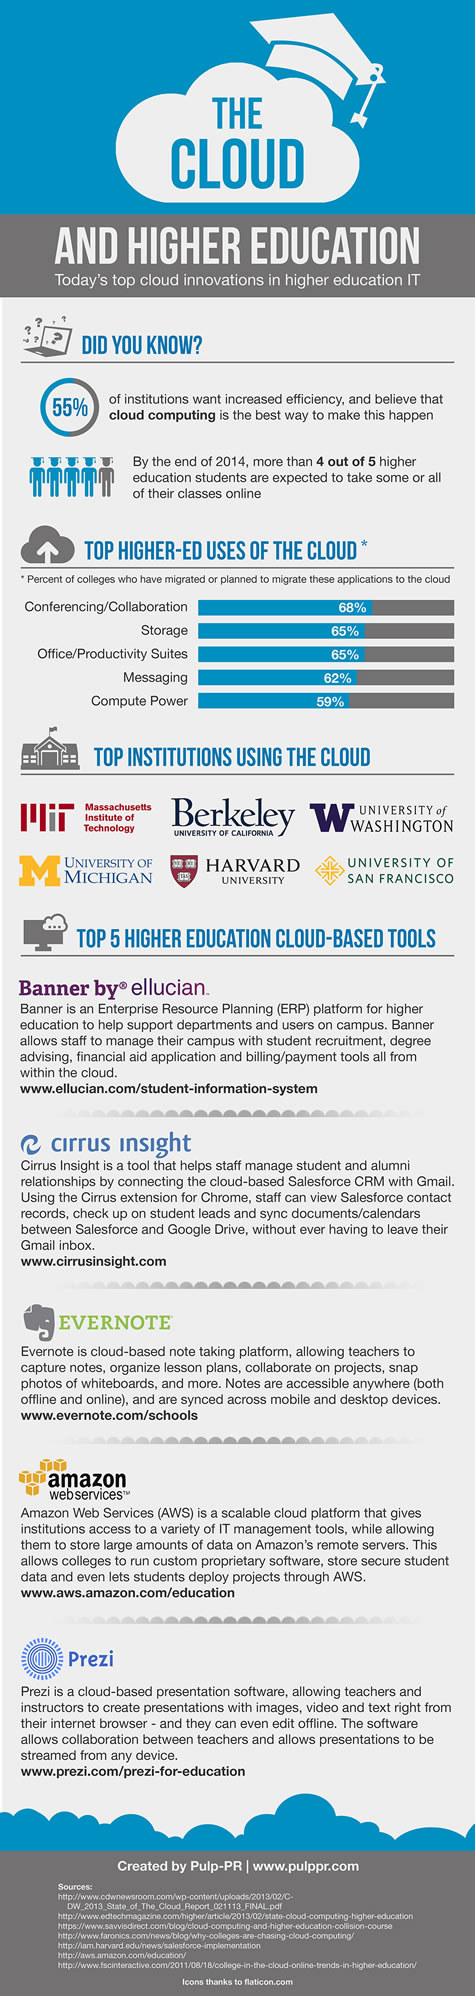 The cloud and HigherEd